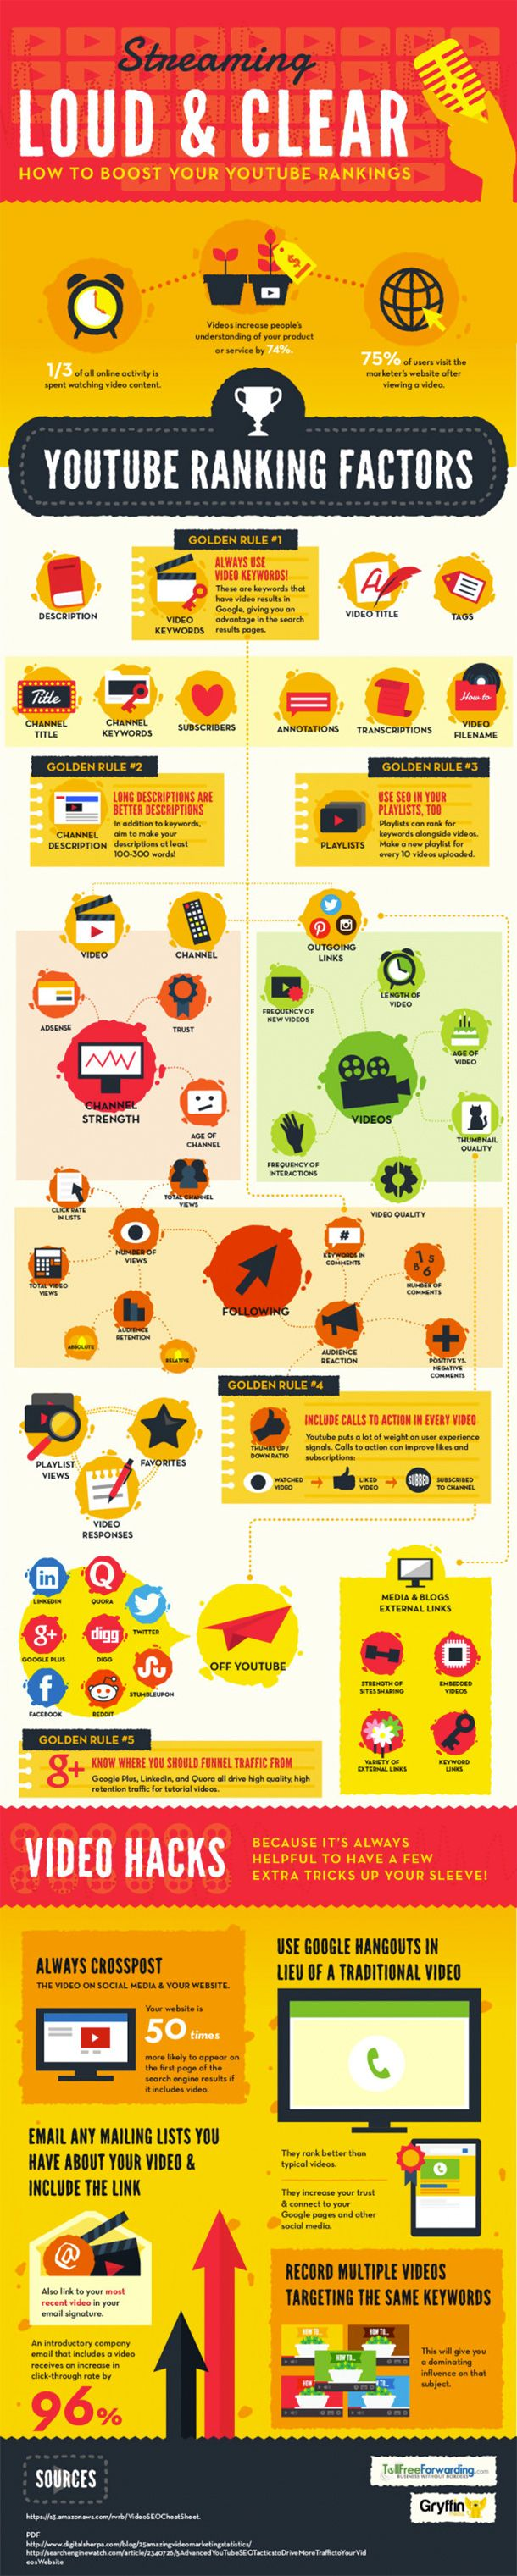 [INFOGRAPHIC] How to Boost Your YouTube Ranking: Keywords; Descriptions; SEO; Call-to-action; Traffic; Details.